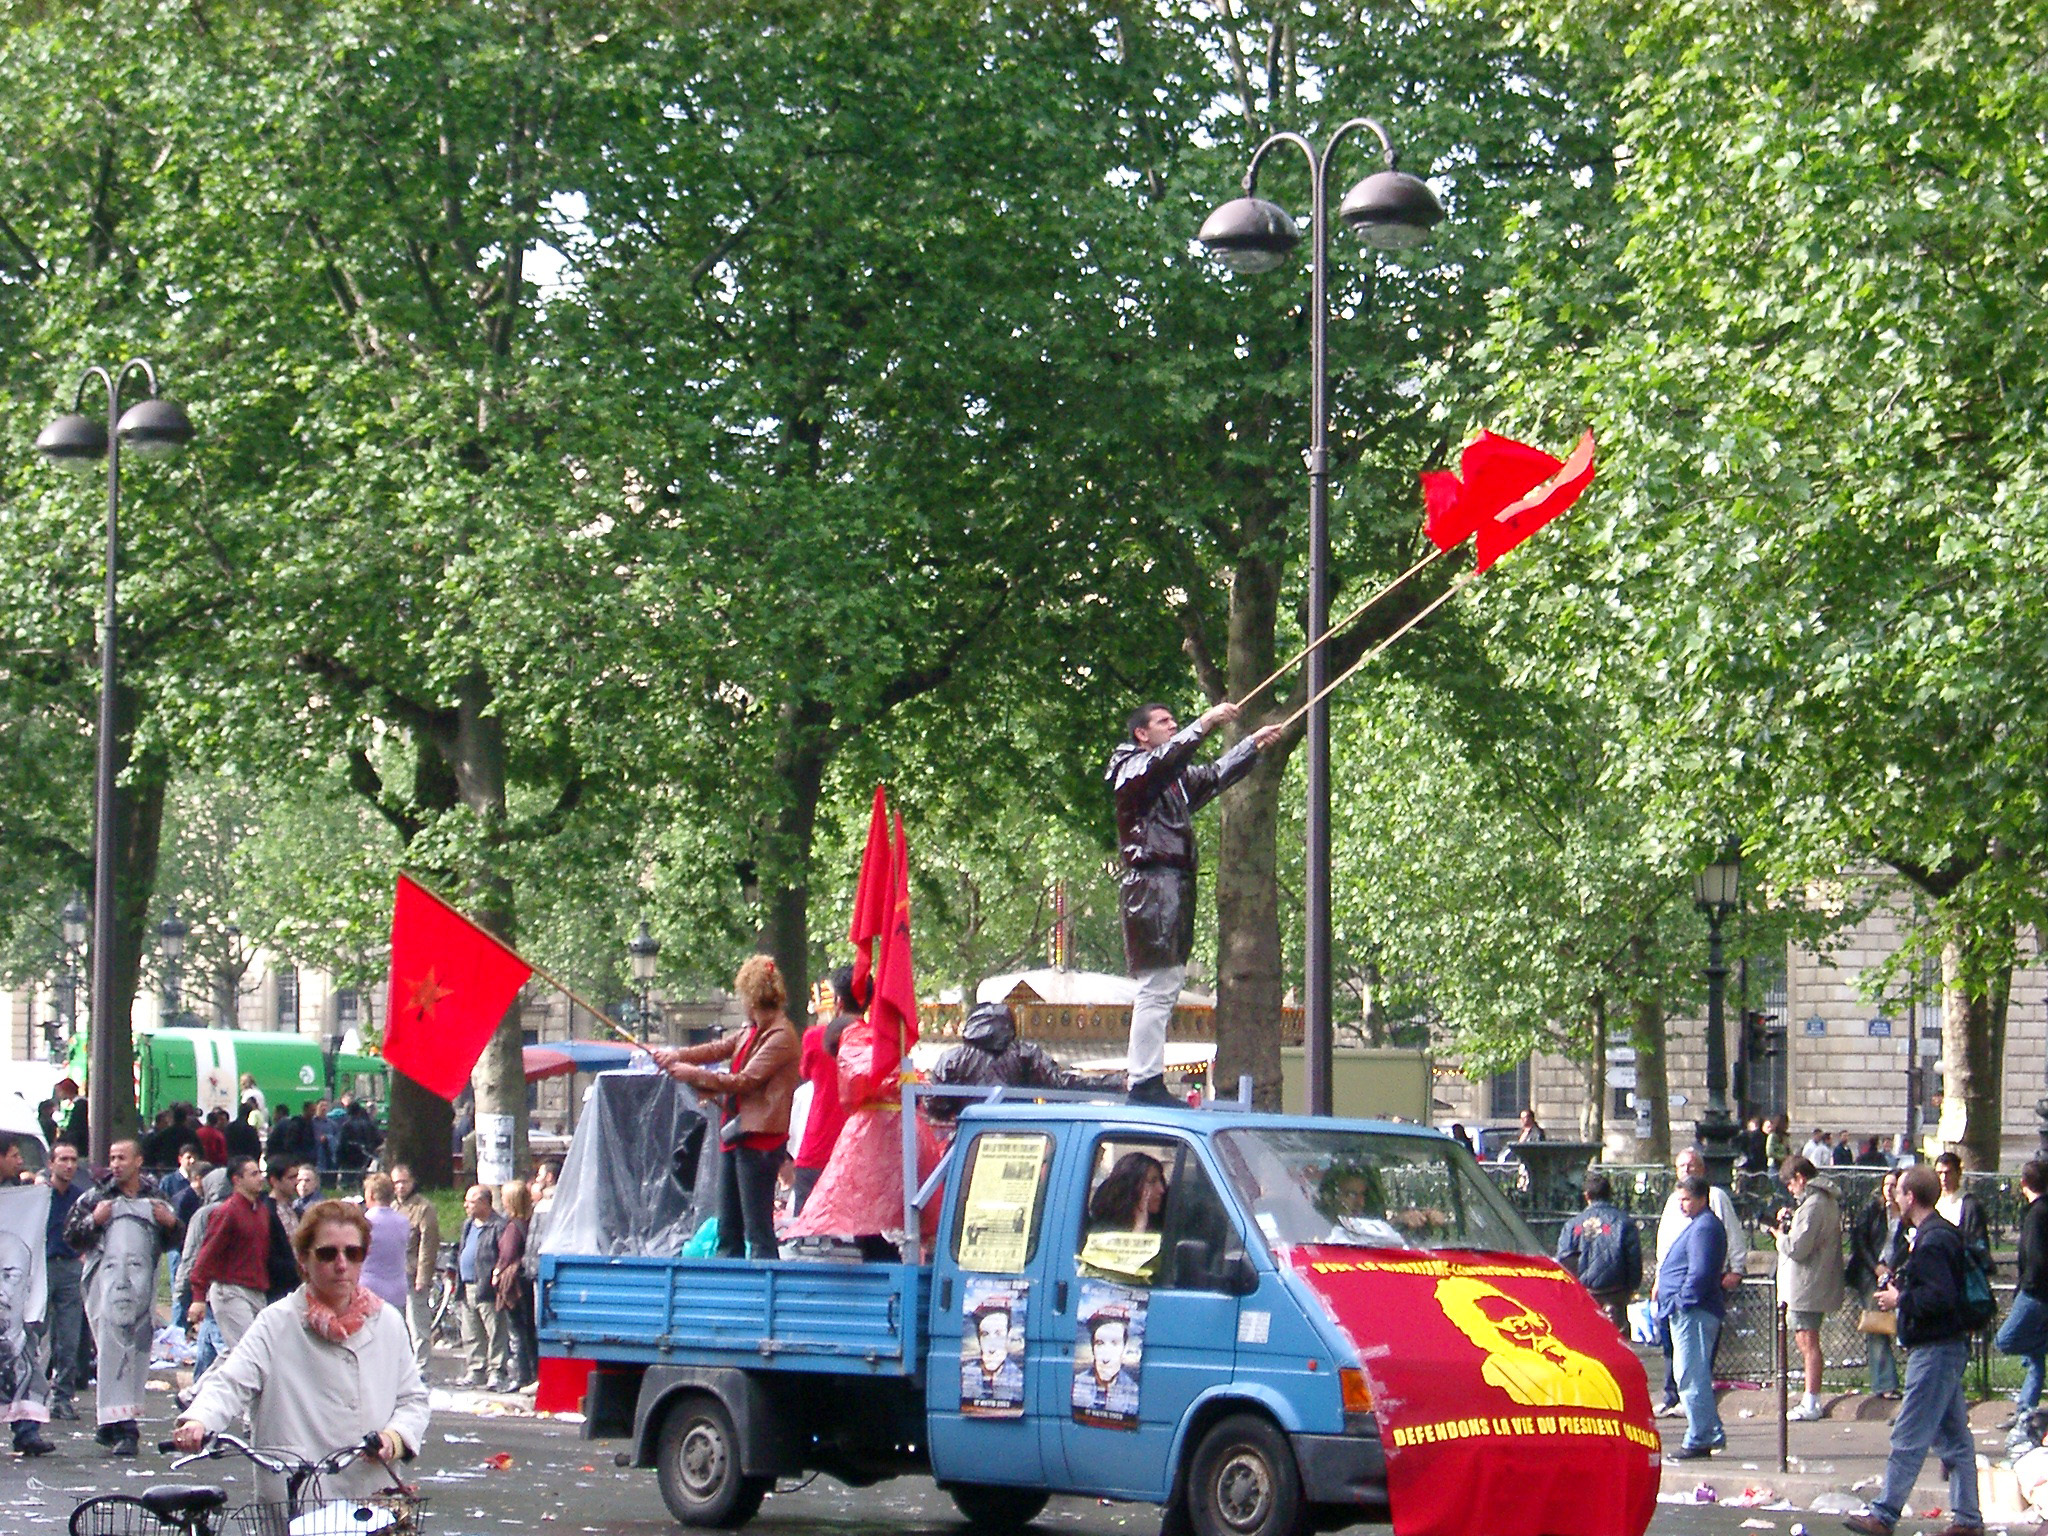 Men with Flags on Vehicle with Random People on Ground During May Day Parade. Isolated on Tall Green Trees.